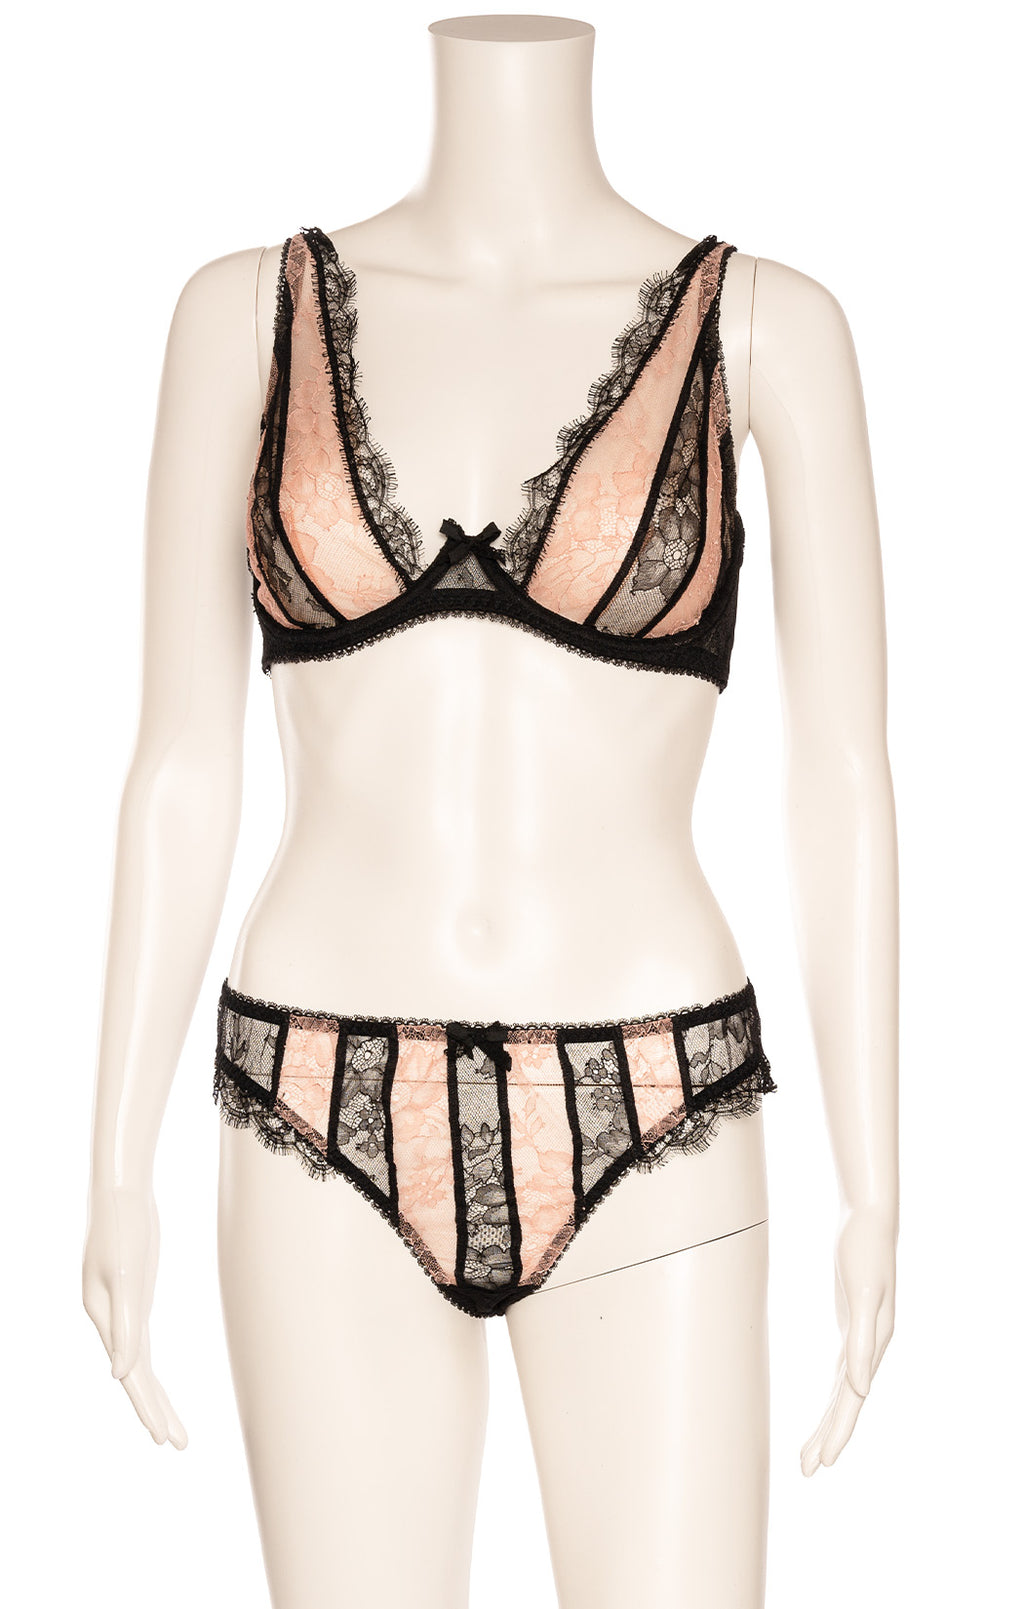 AGENT PROVOCATEUR with tags  Bra and matching panty Size: Bra - 36 D, panty - Large